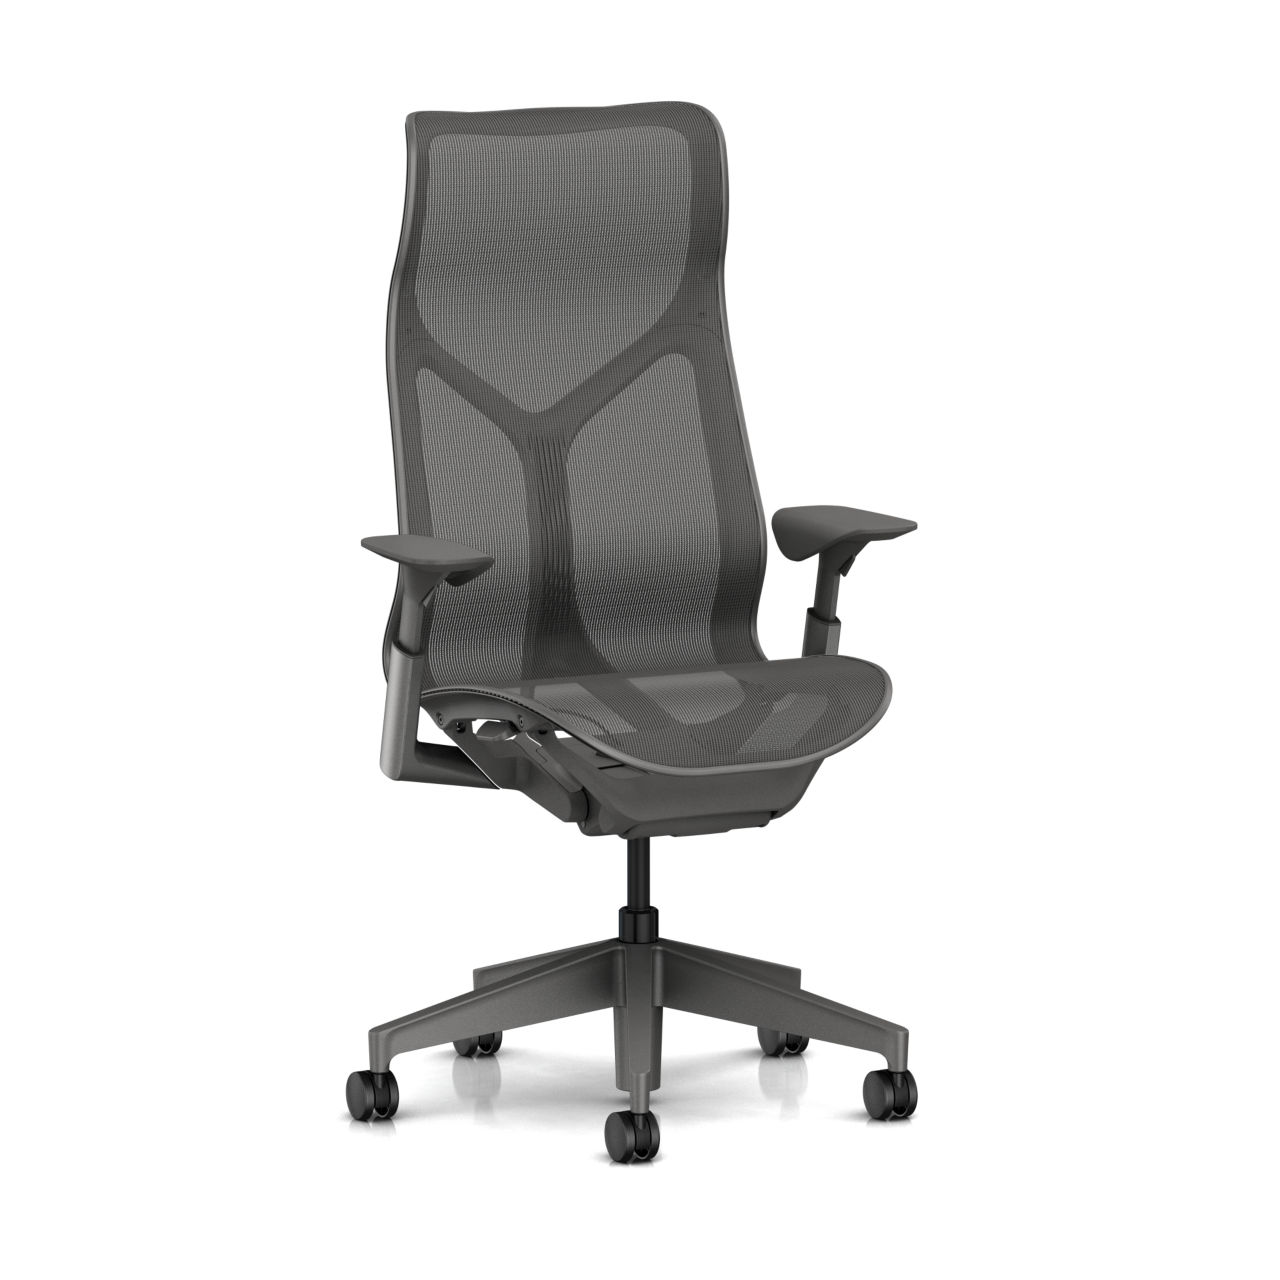 Cosm Chair in Carbon High Back Height by Herman Miller